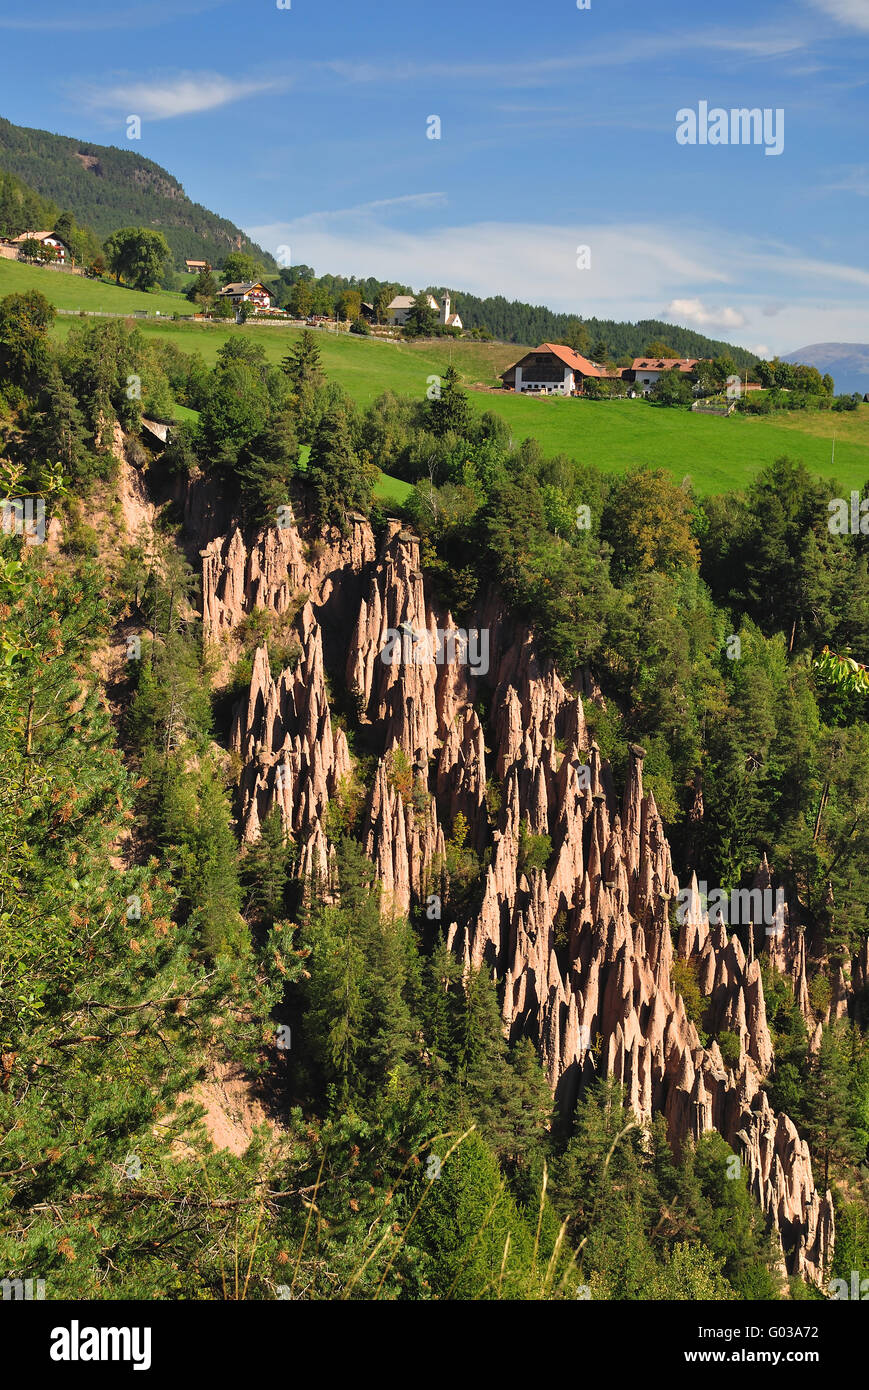 Natural Heritage Earth Pyramids in South Tyrol - Stock Image